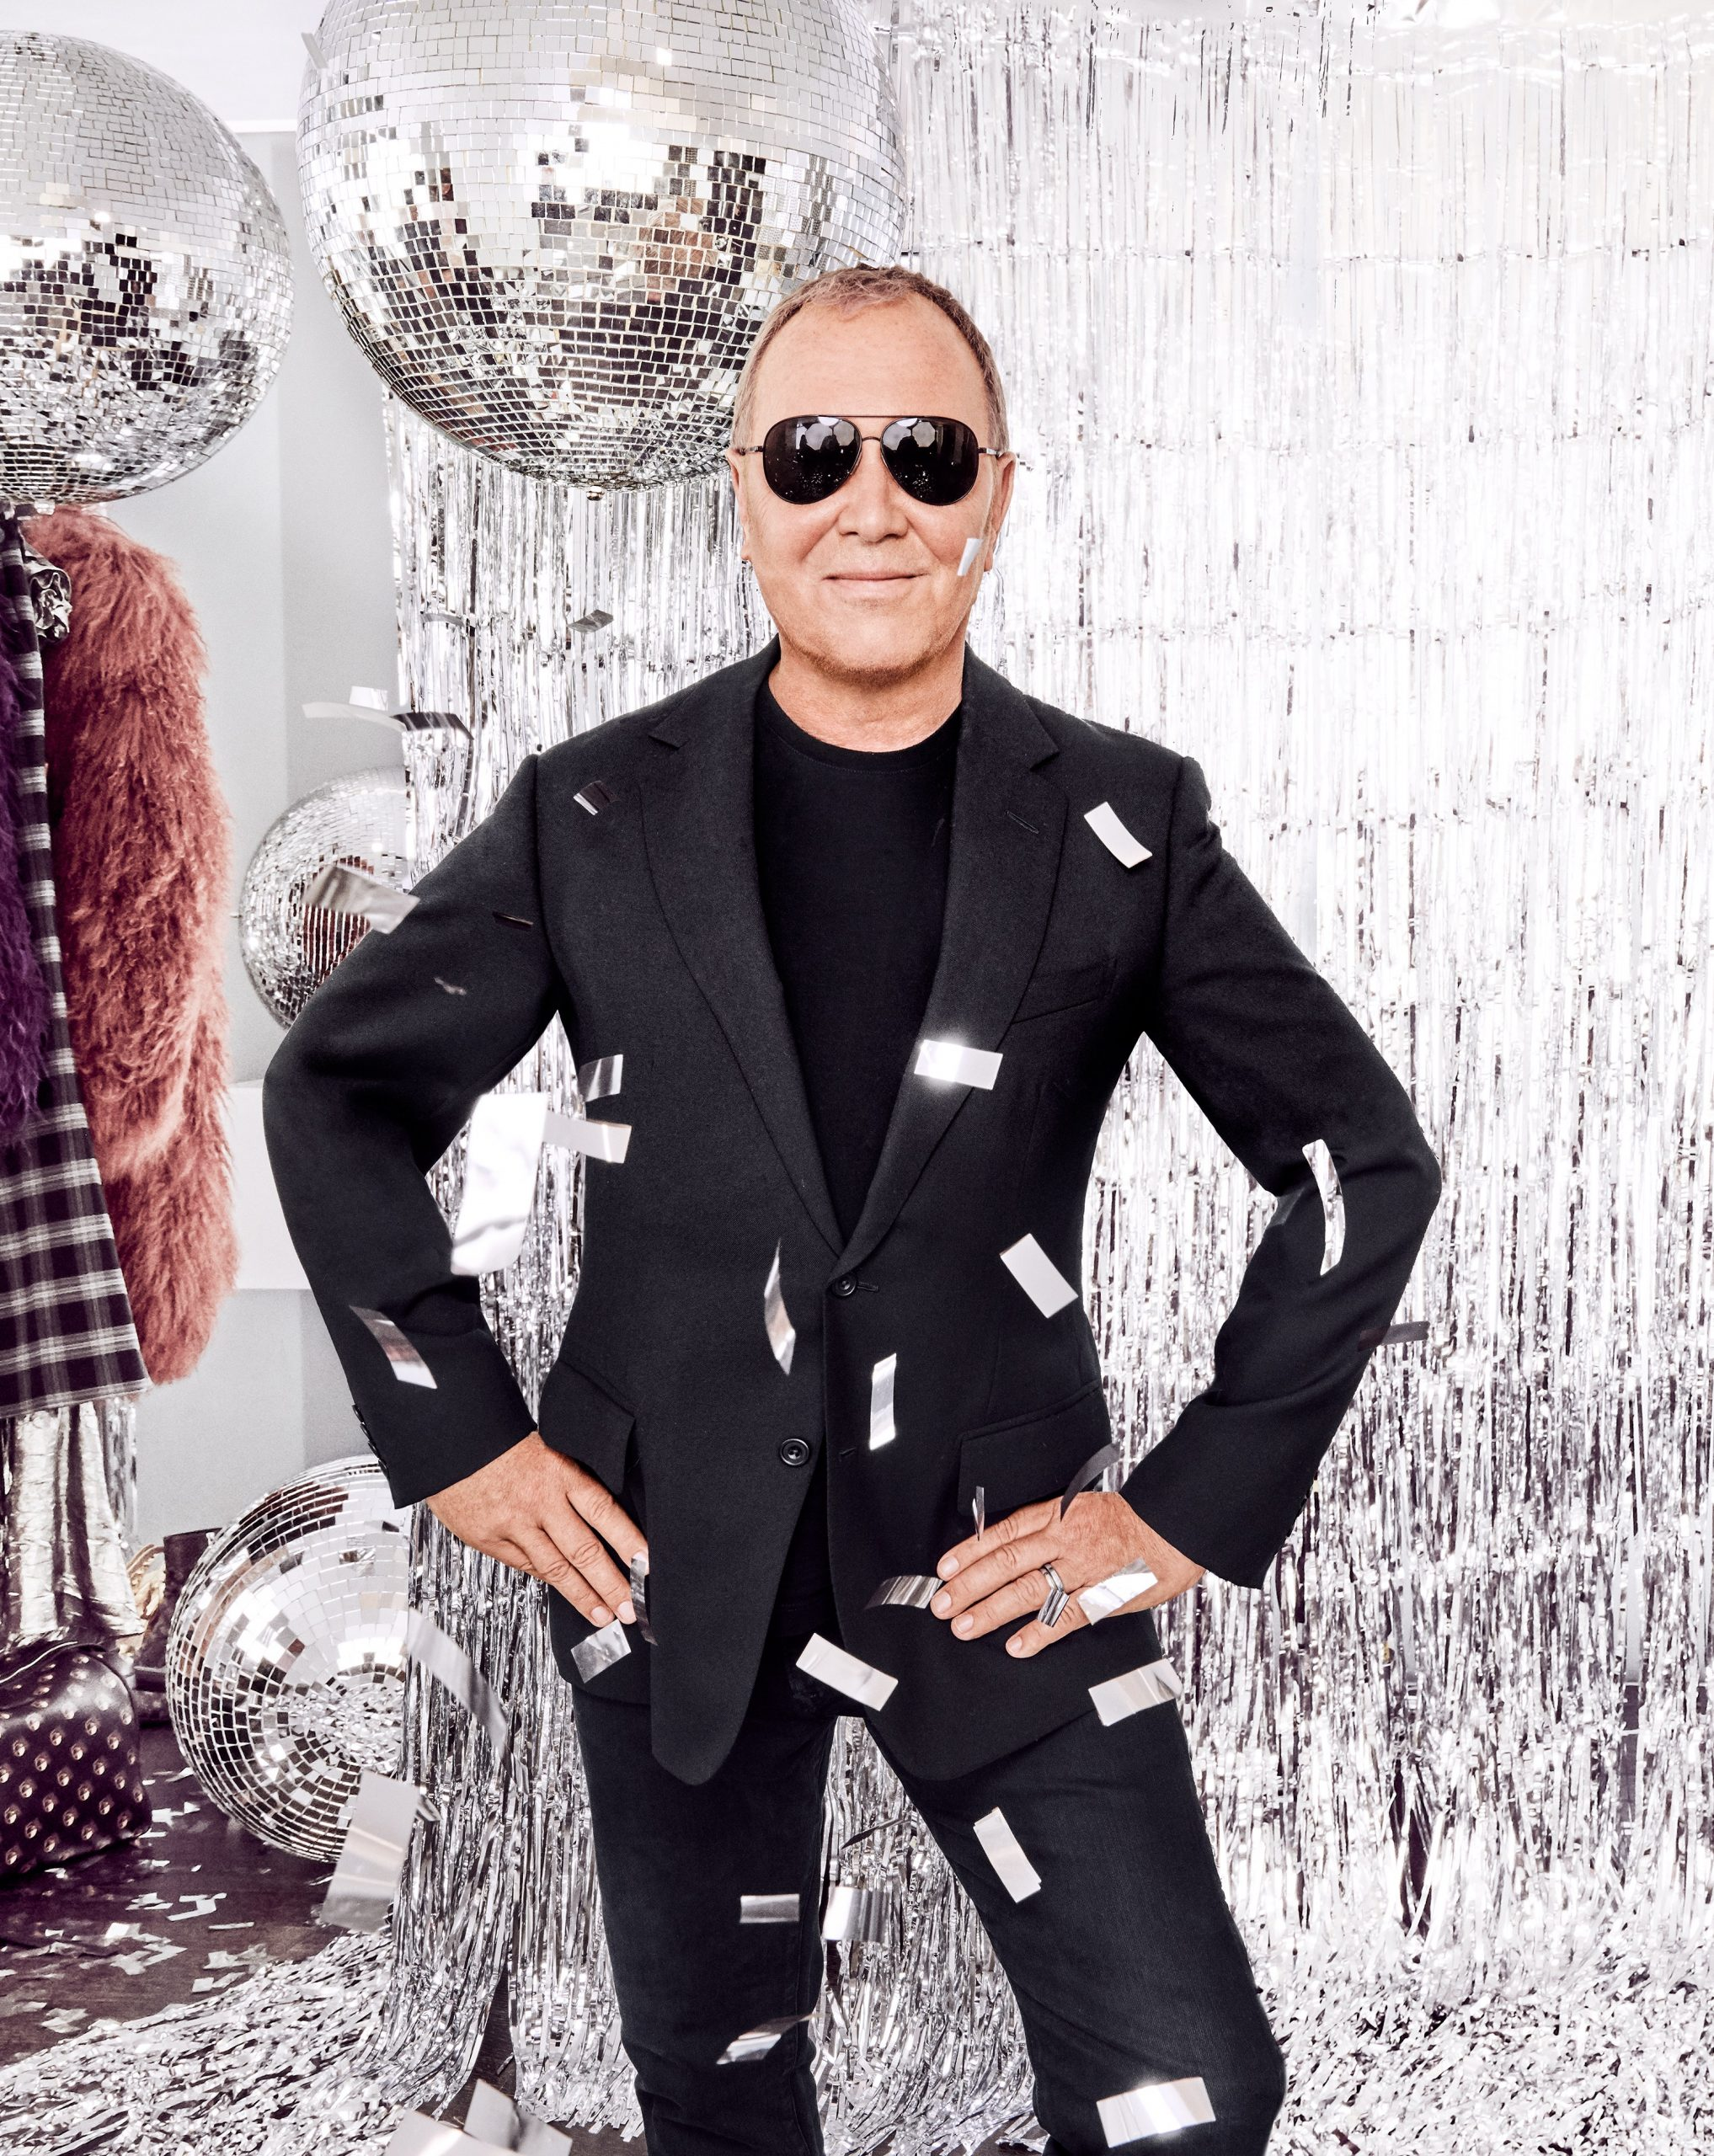 Plans finalized to show Michael Kors spring 2021 collection